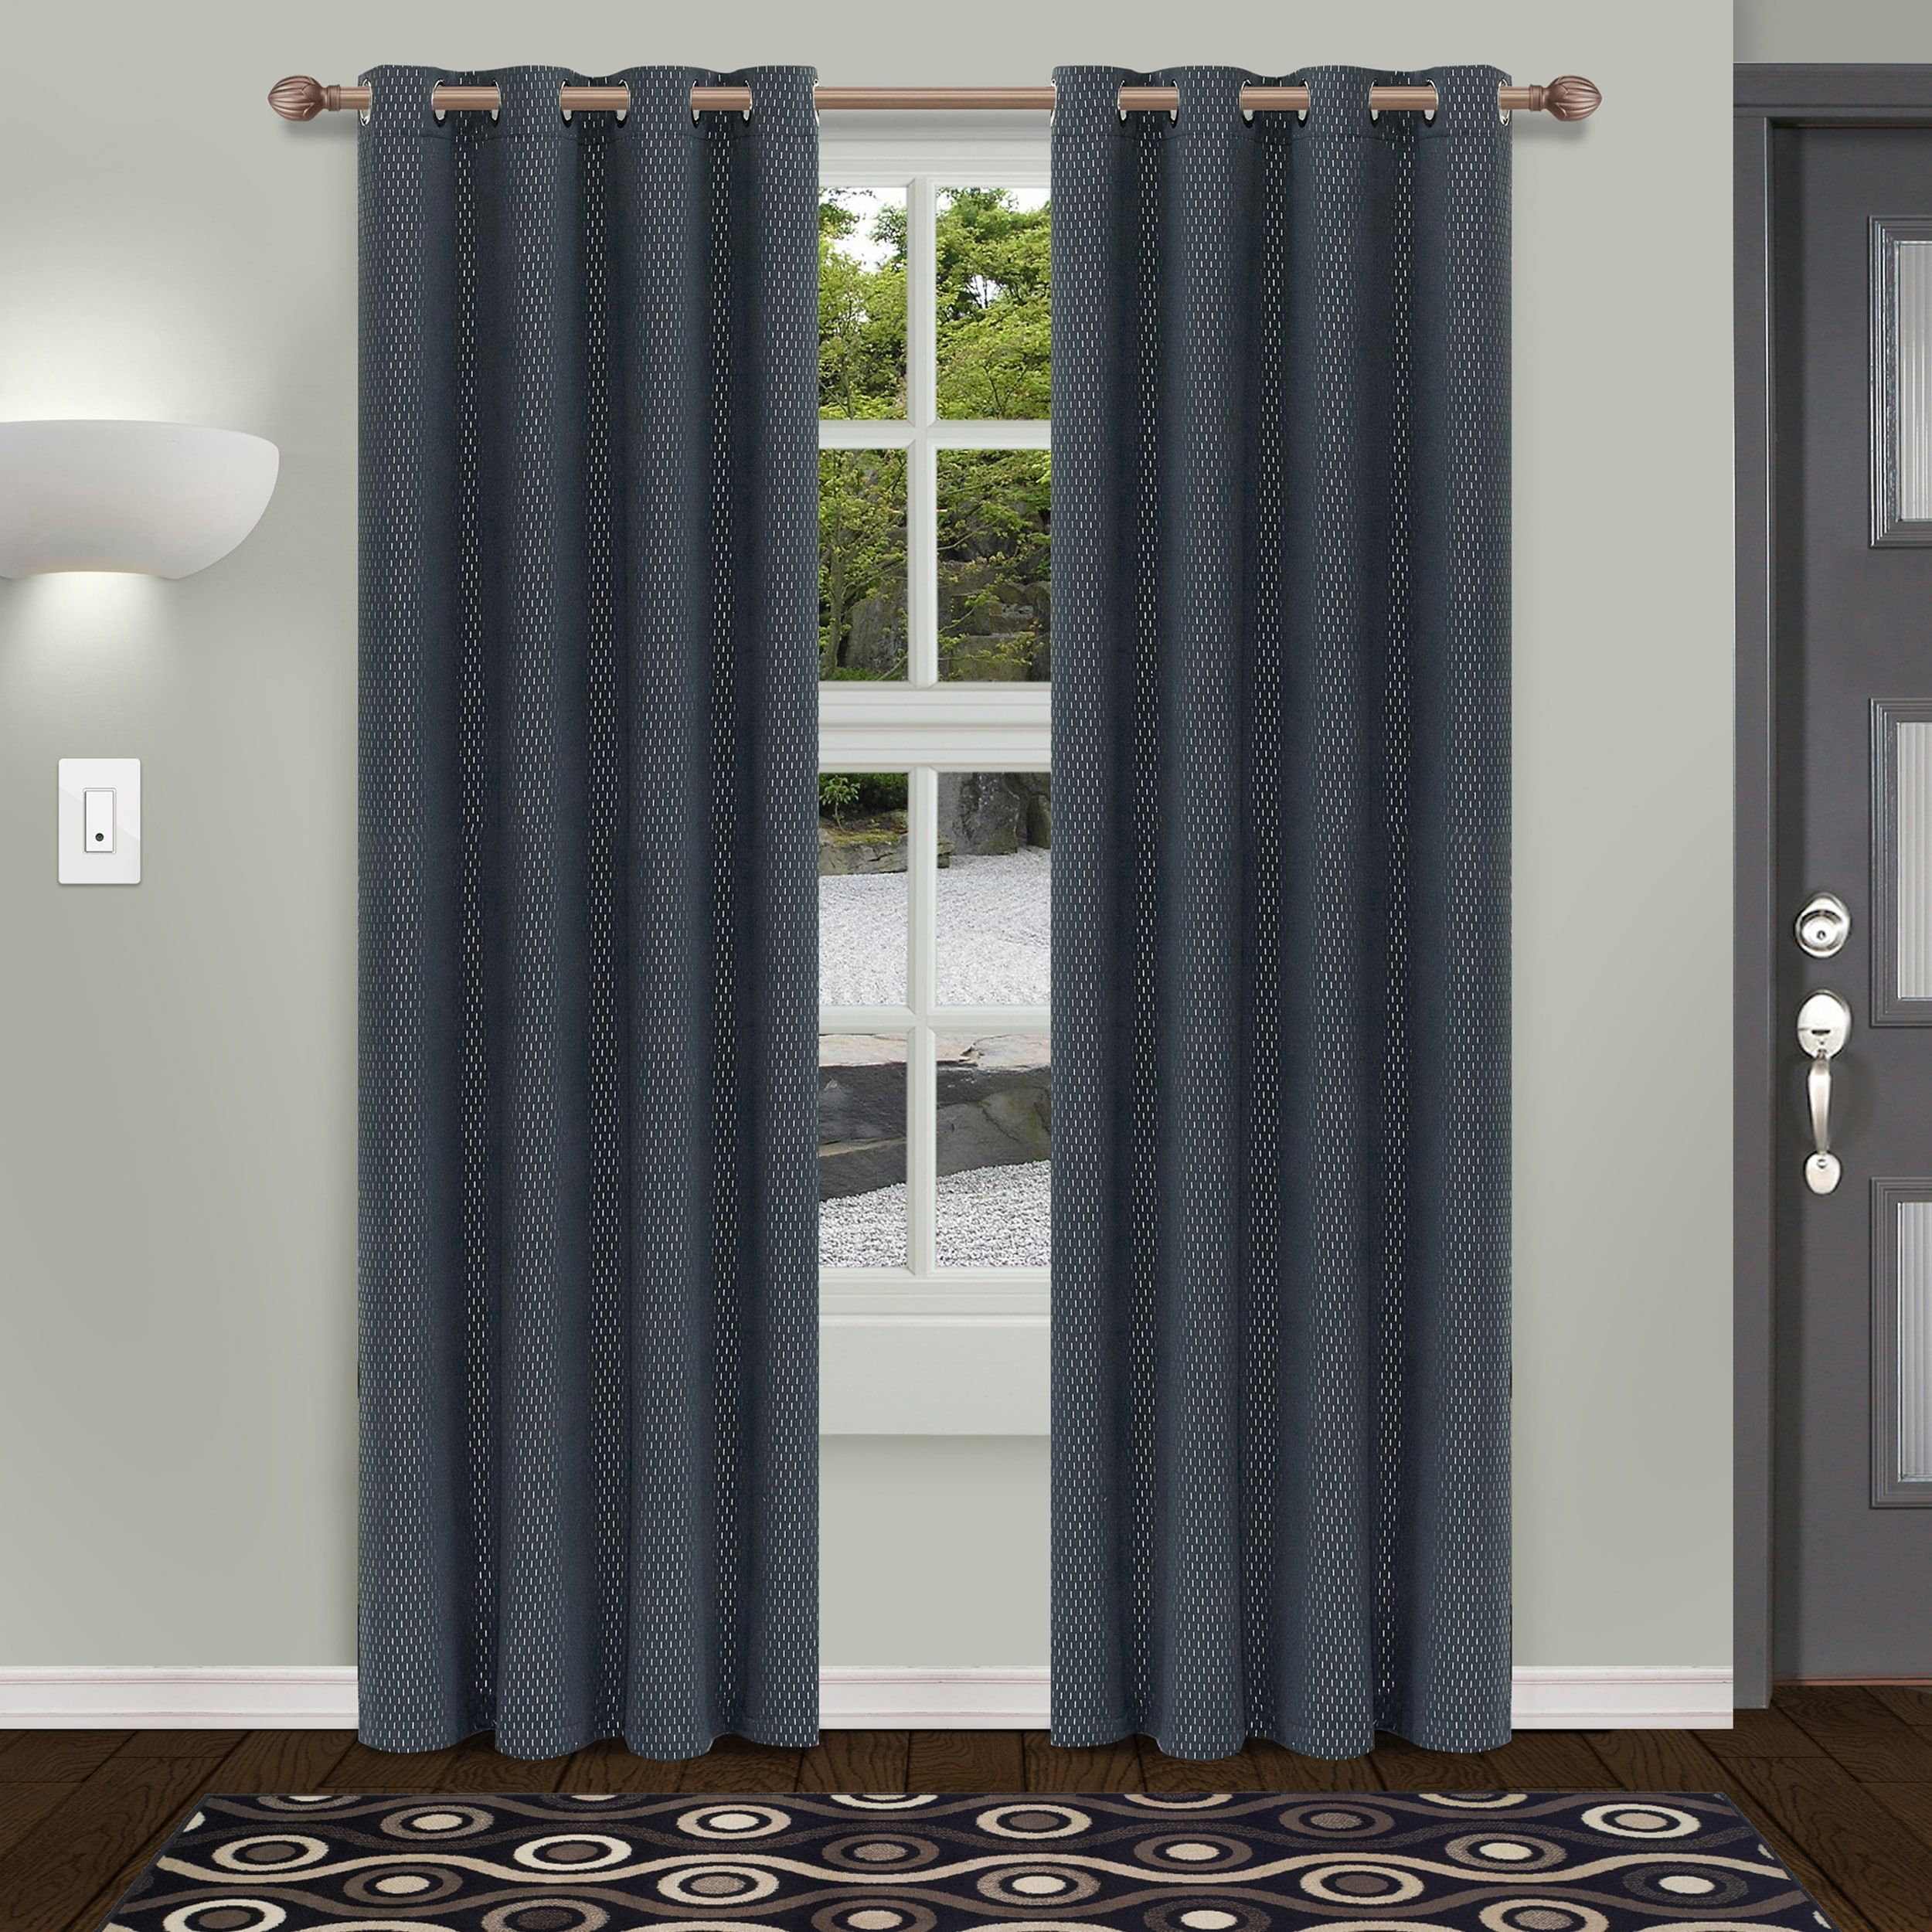 Superior Shimmer Insulated Thermal Blackout Grommet Curtain With Regard To Insulated Thermal Blackout Curtain Panel Pairs (View 17 of 20)